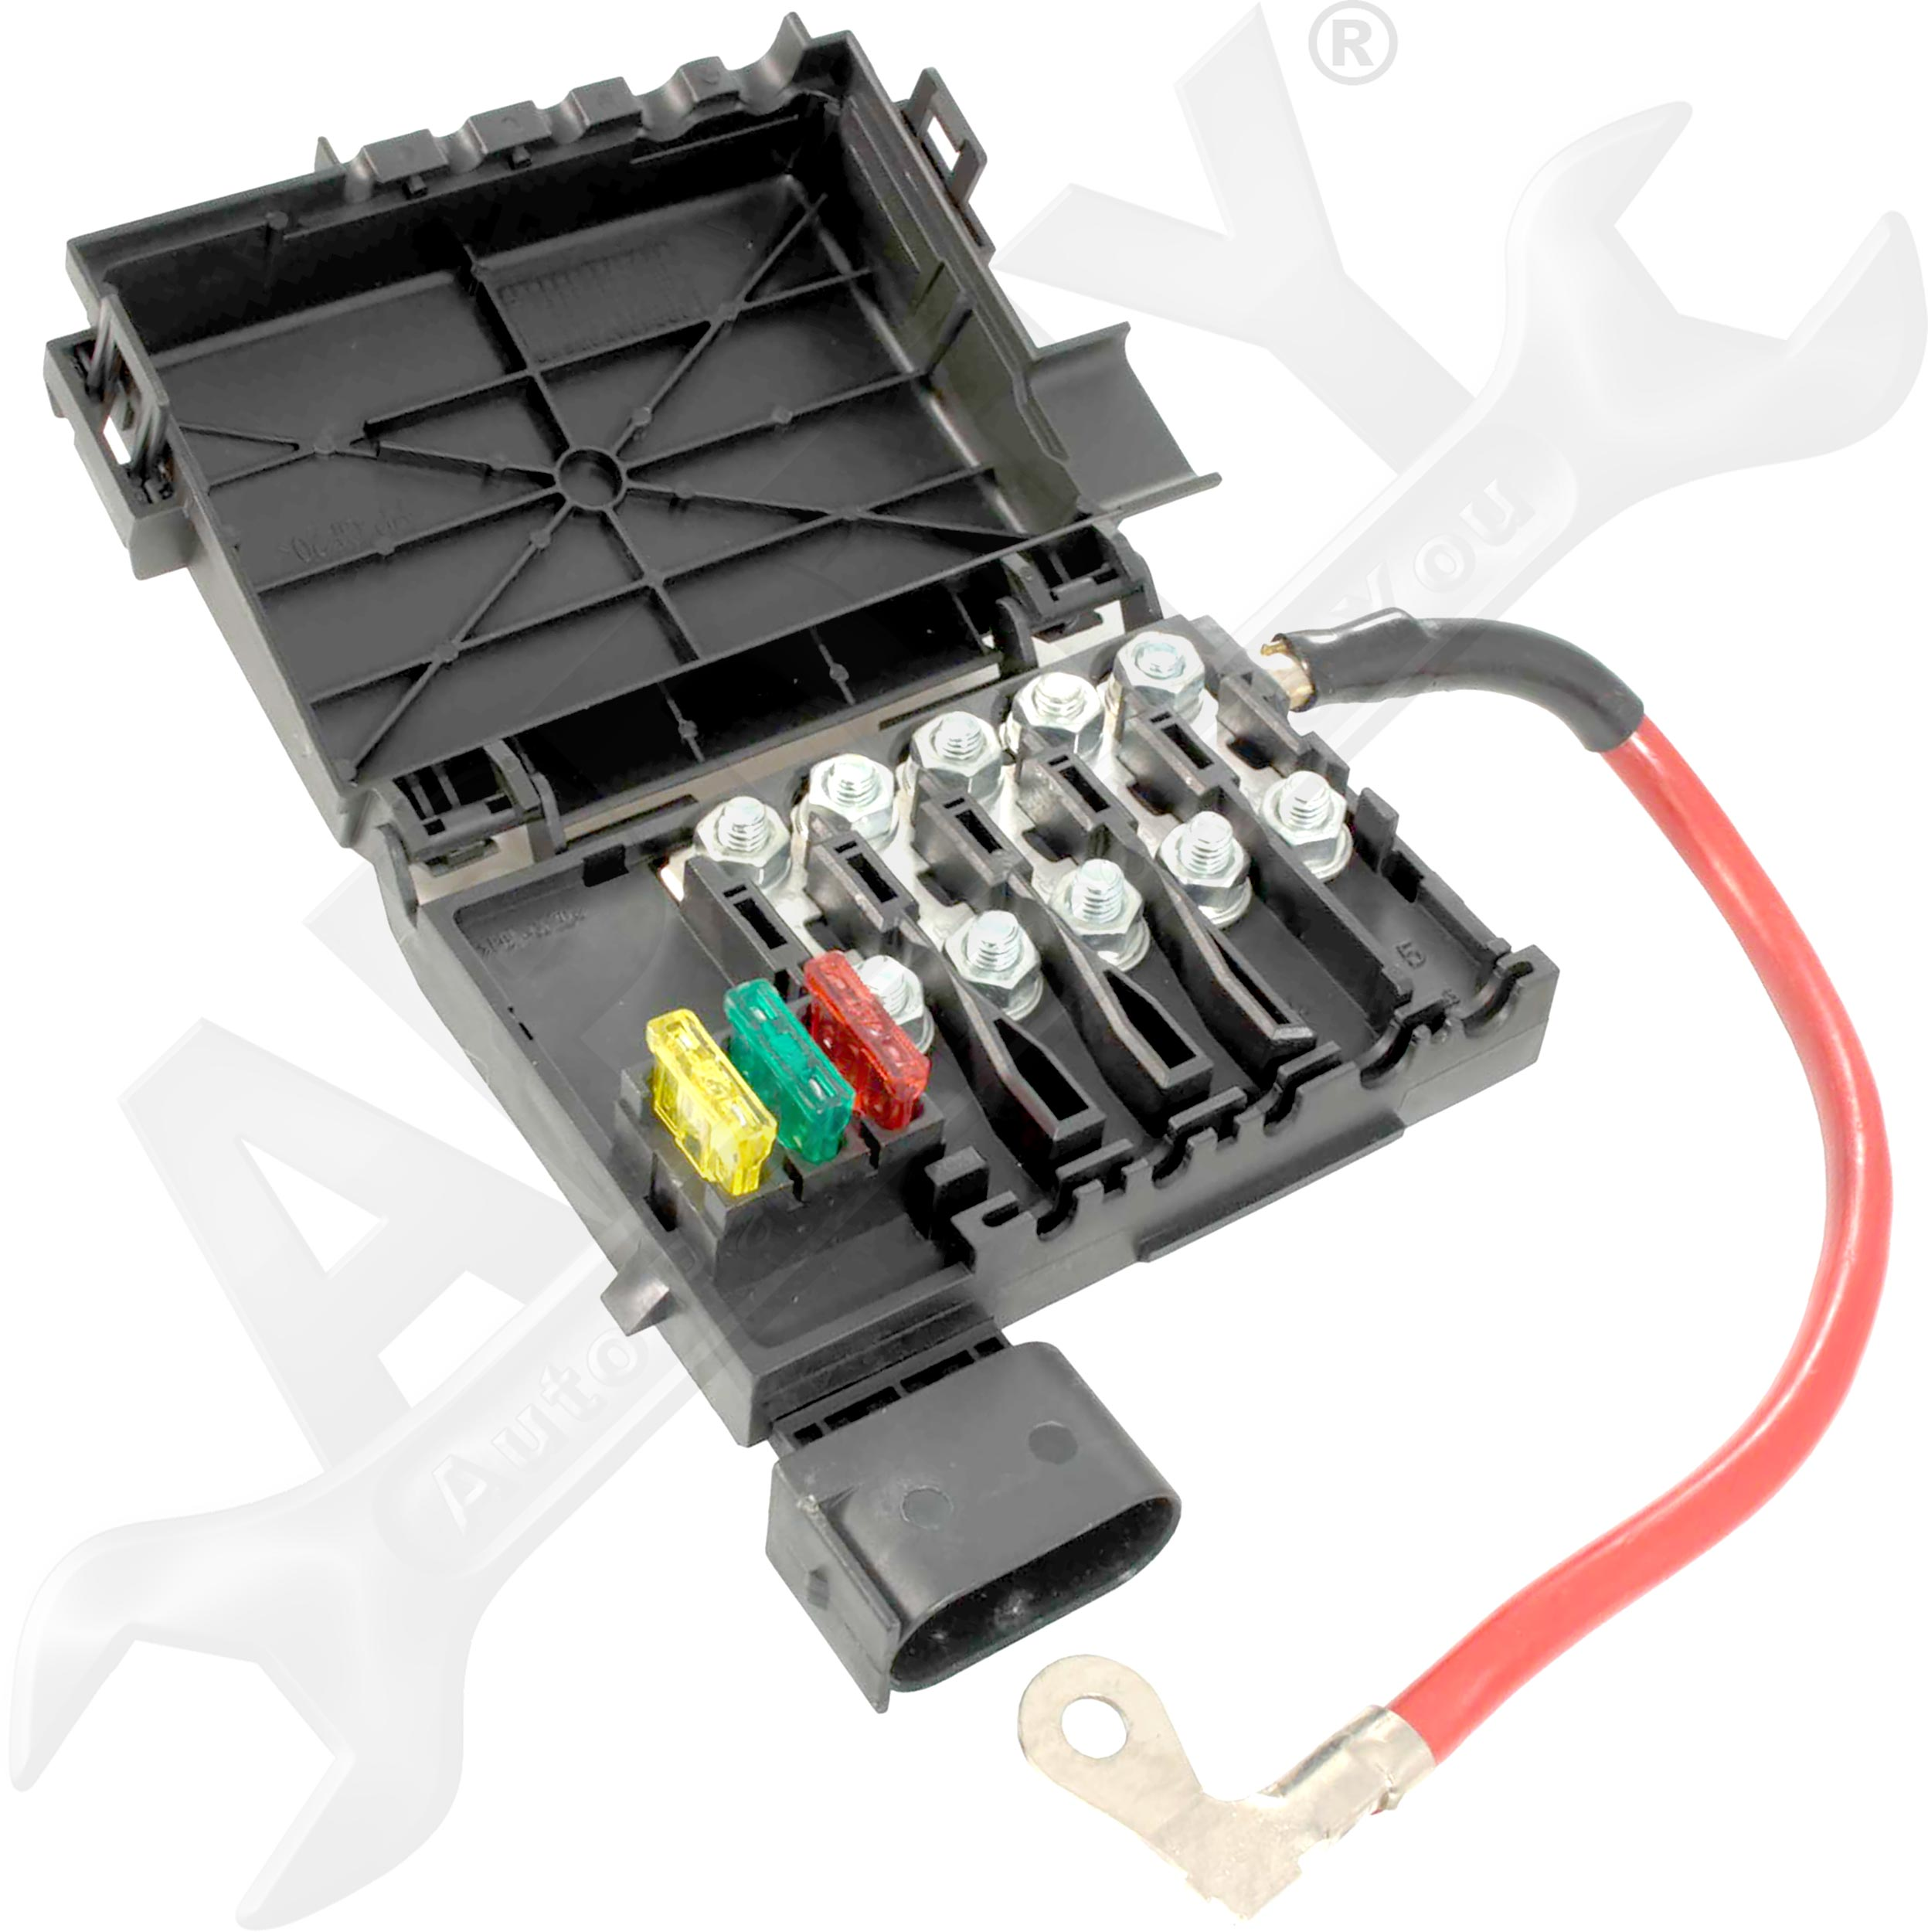 Ac Fuse Box Melted : Vw beetle fuse box melting wiring diagram images